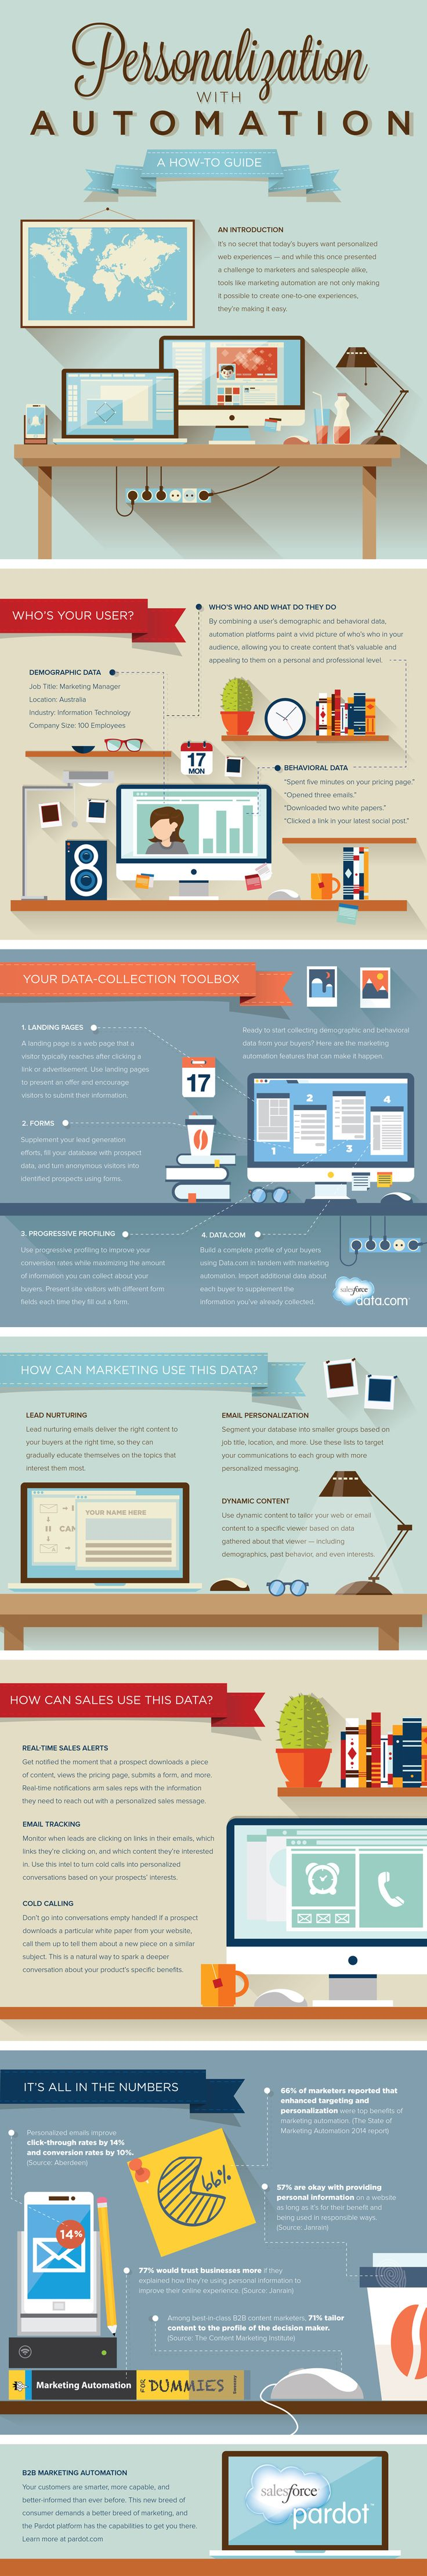 Personalization with #Marketing Automation #Infographic [More info: http://www.pardot.com/whitepapers/personalization-automation-complete-guide/]